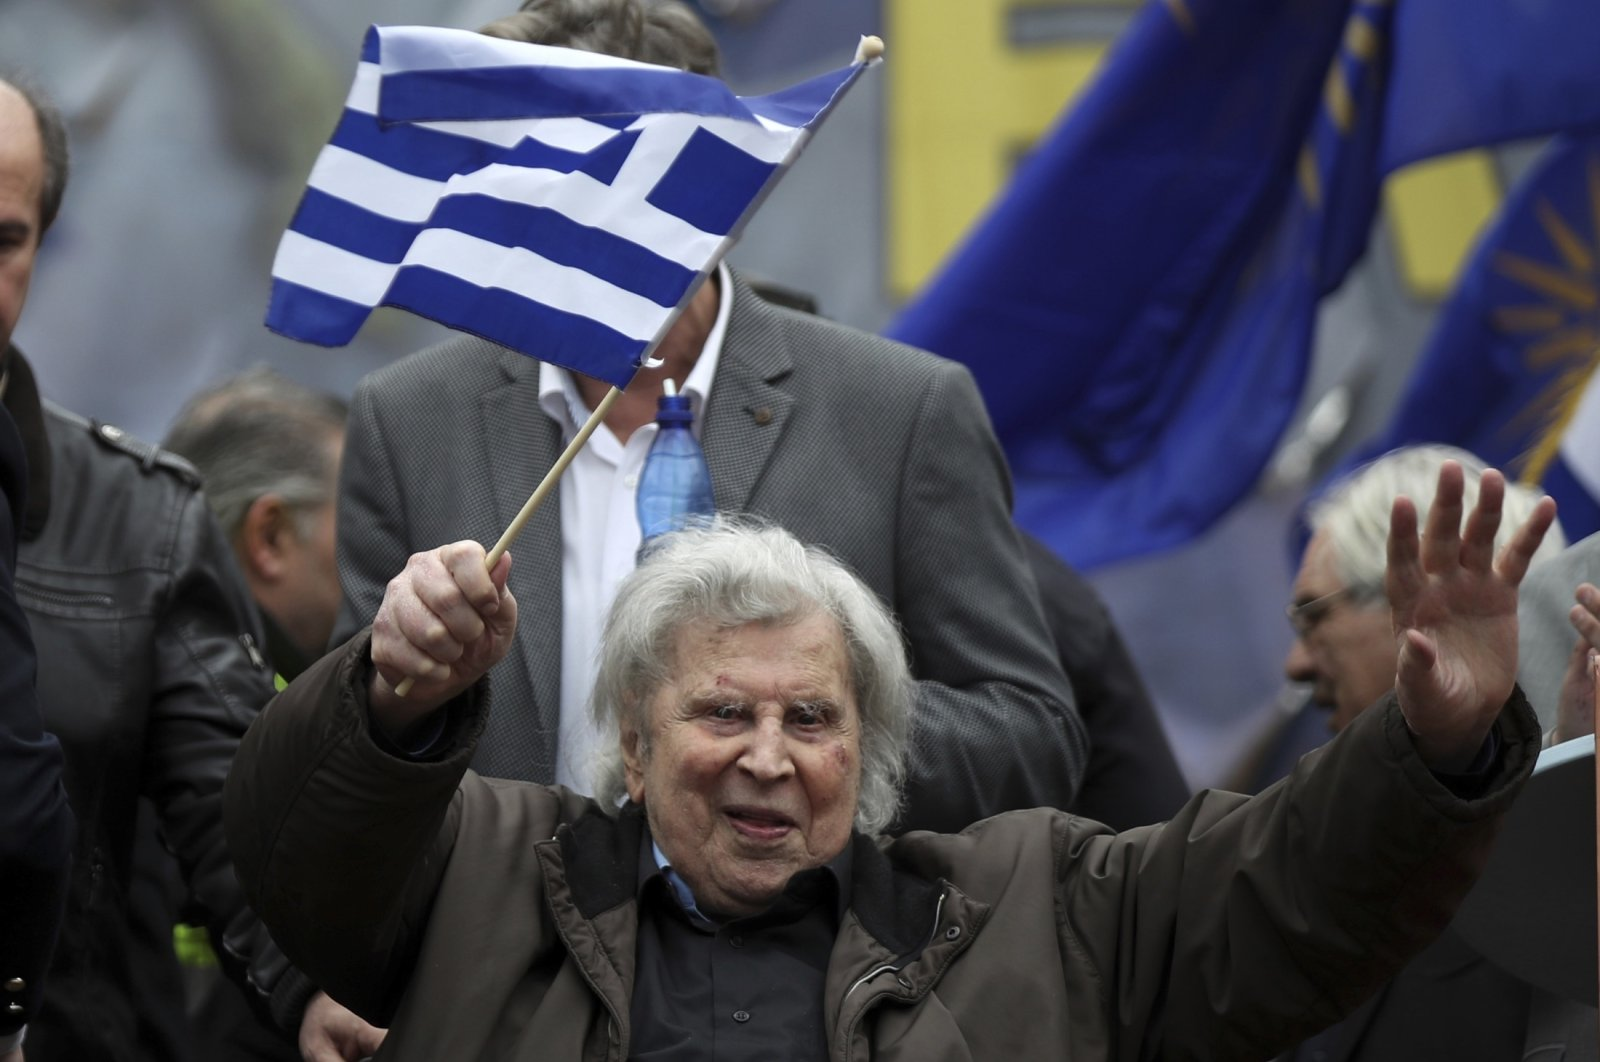 Famous Greek composer Mikis Theodorakis waves a Greek flag after his speech at a rally in Athens, Greece, Feb. 4, 2018. (AP Photo)